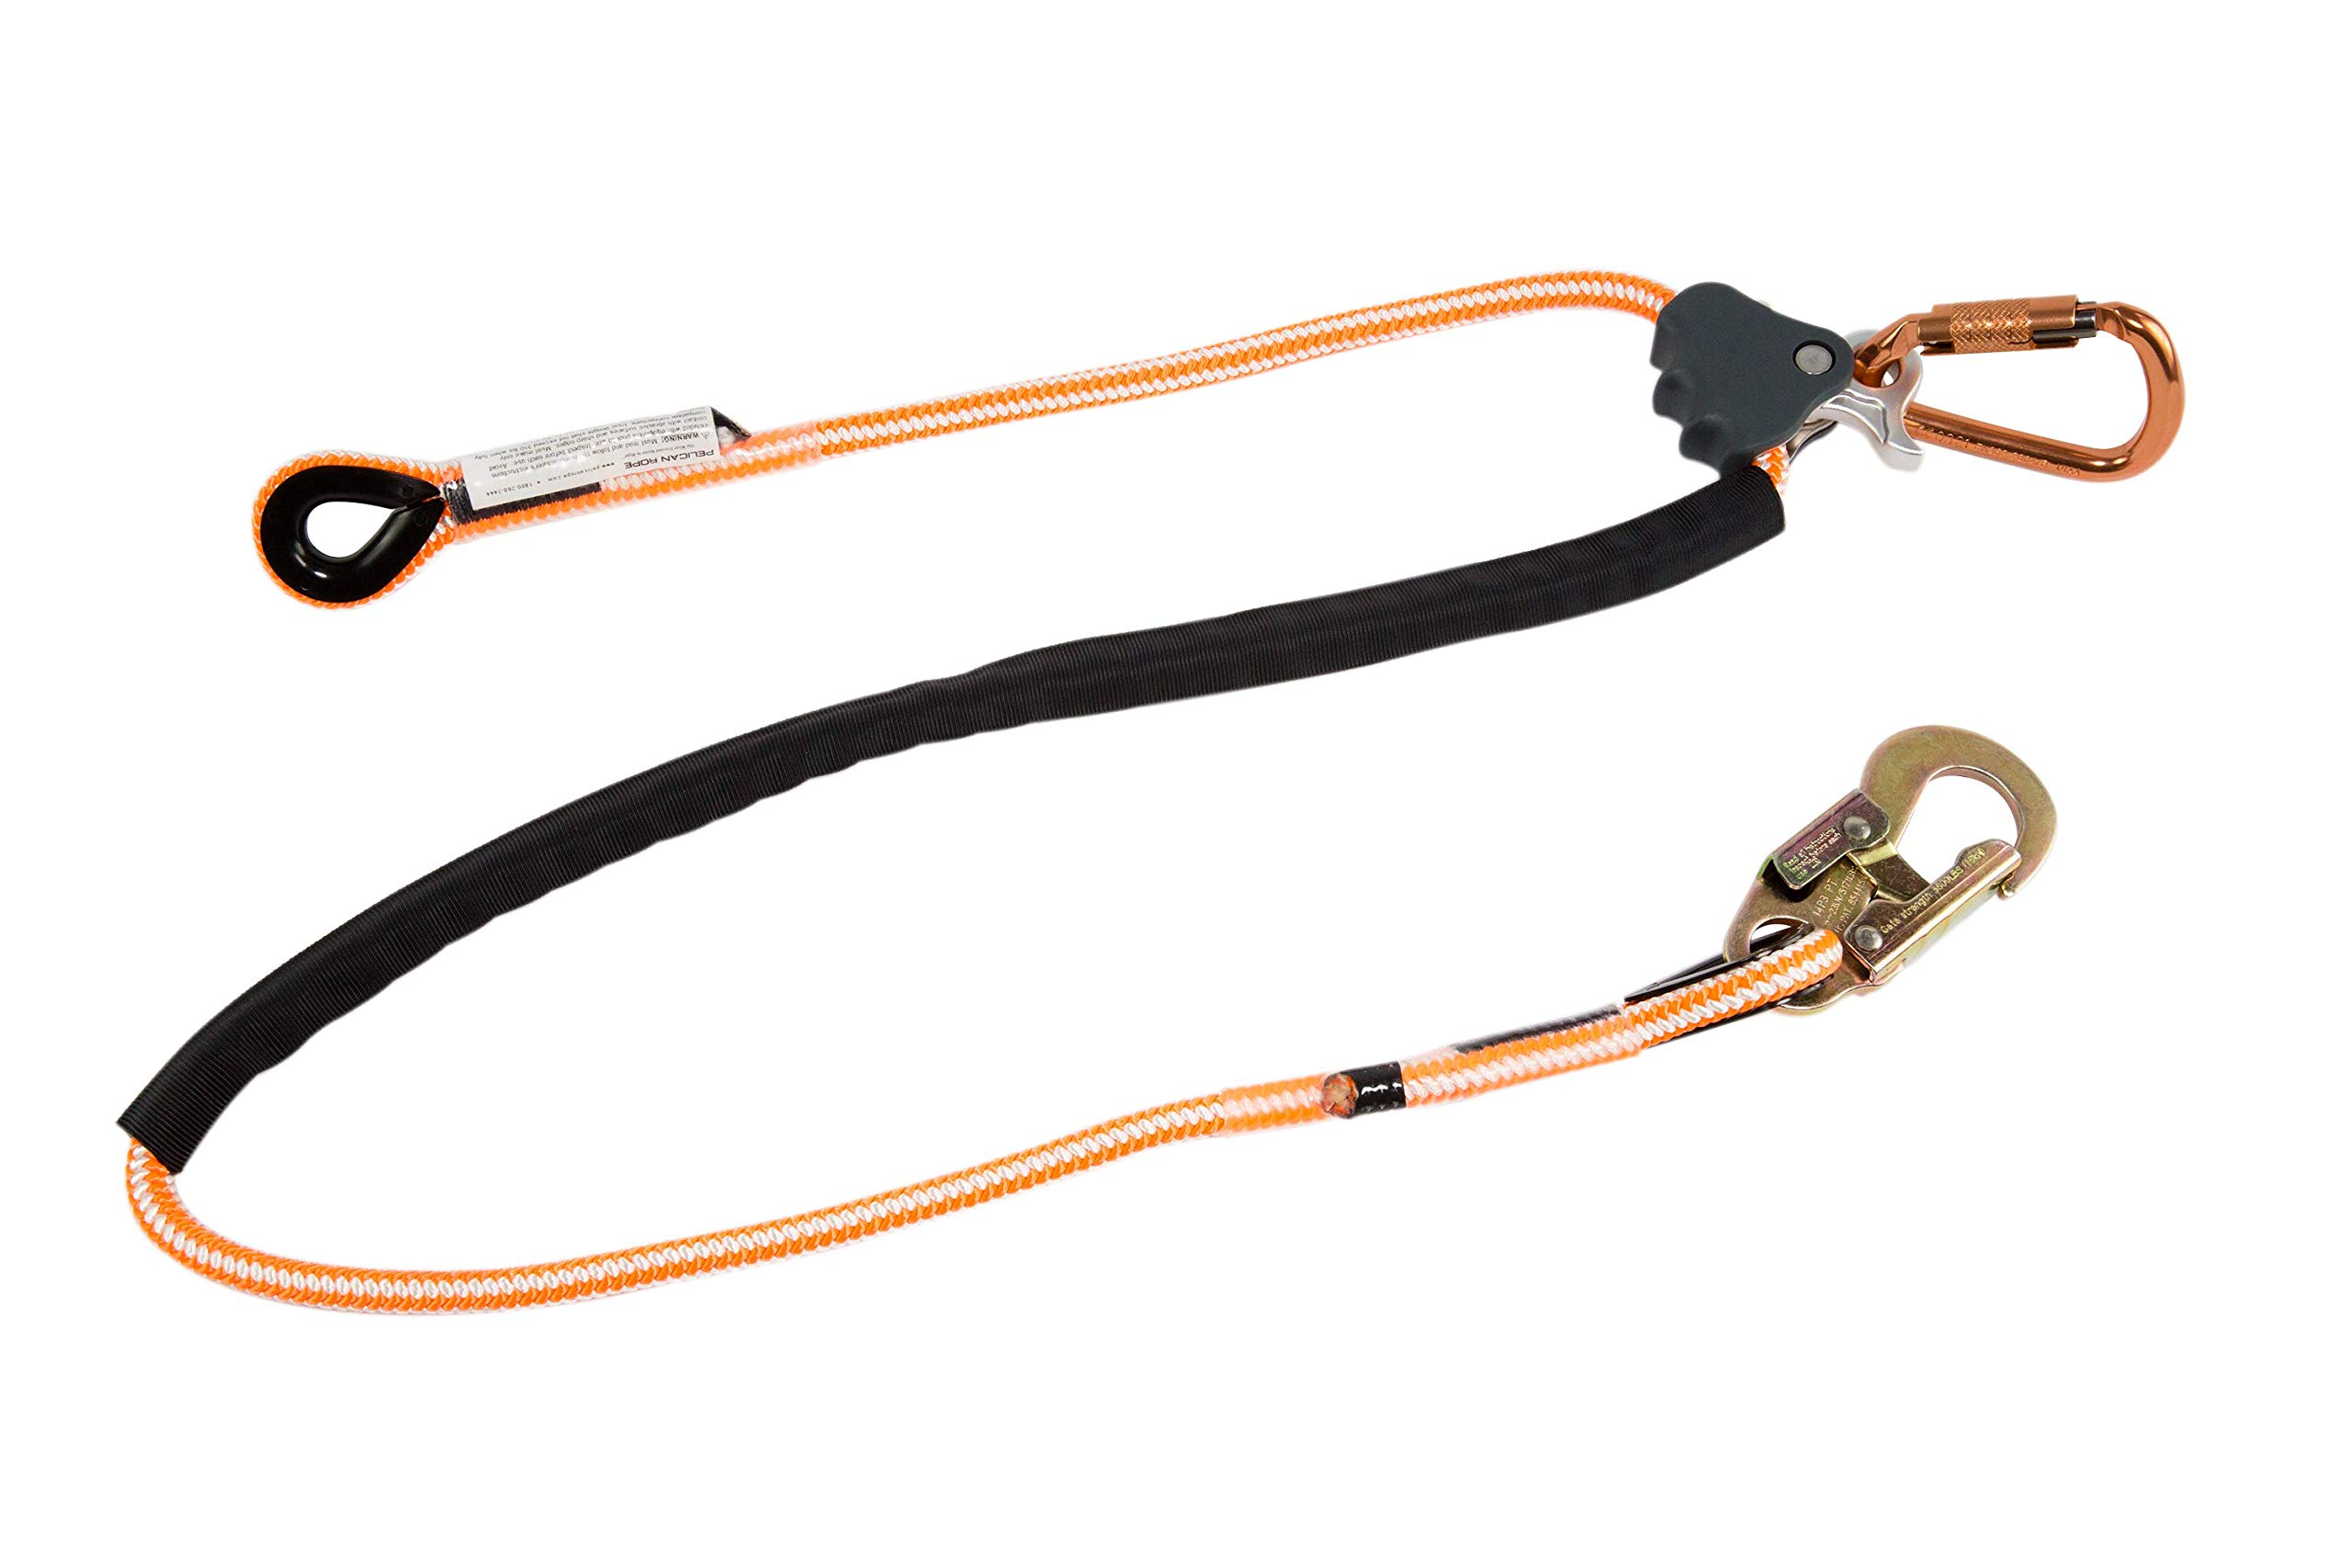 Pelican Rope Arborist-16 Adjustable Work Positioning Lanyard with Steel Snap Hook (1/2 in) - ANSI Certified All-In-One Kit - for Arborist, Rigging, Tree Care, Tower Climbing (8 feet) by Pelican Rope (Image #1)